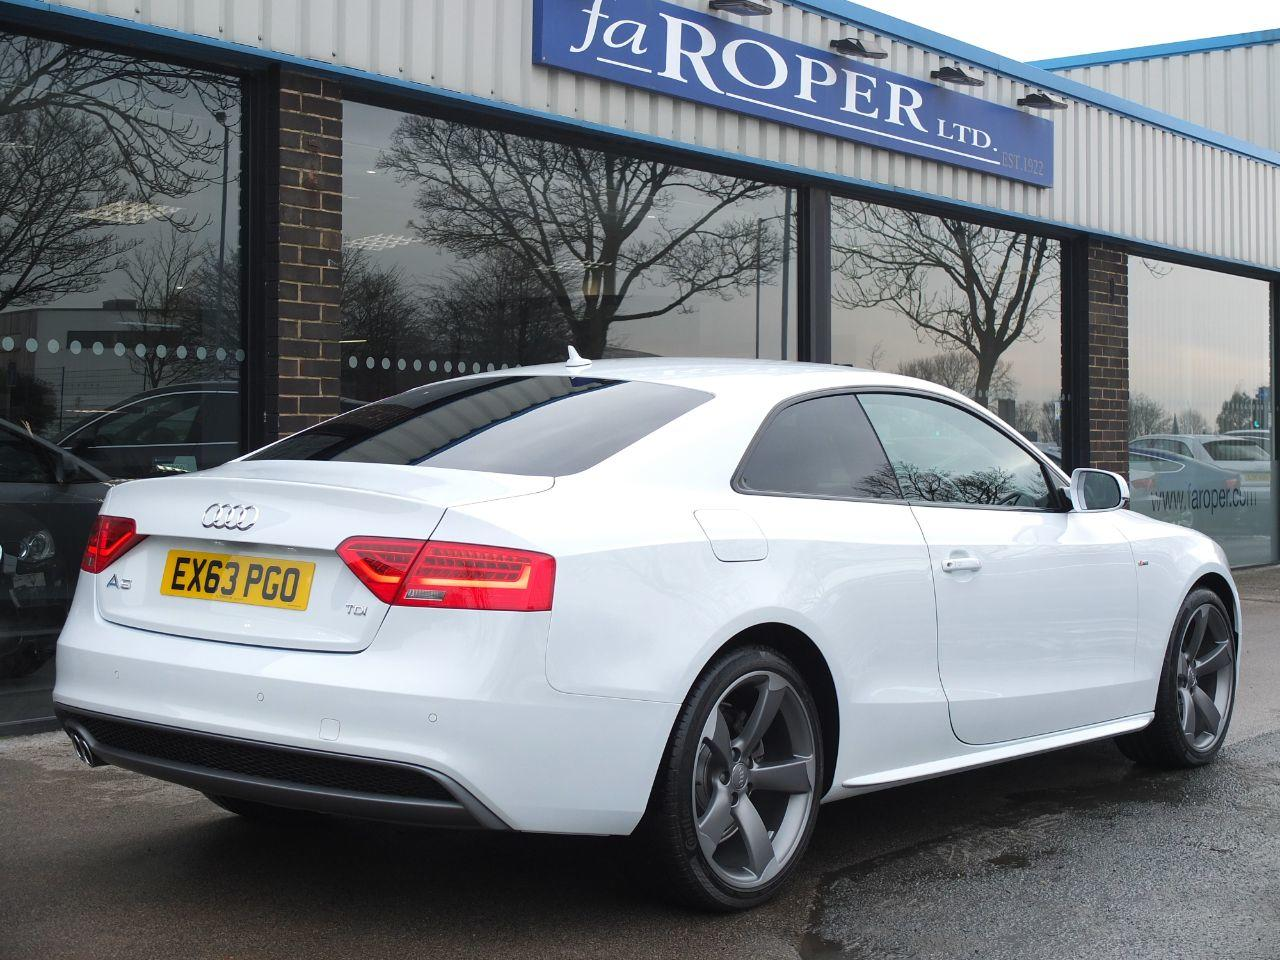 Audi A5 2.0 TDI 177 ps Black Edition Coupe Multitronic +++Spec Coupe Diesel Glacier White Metallic